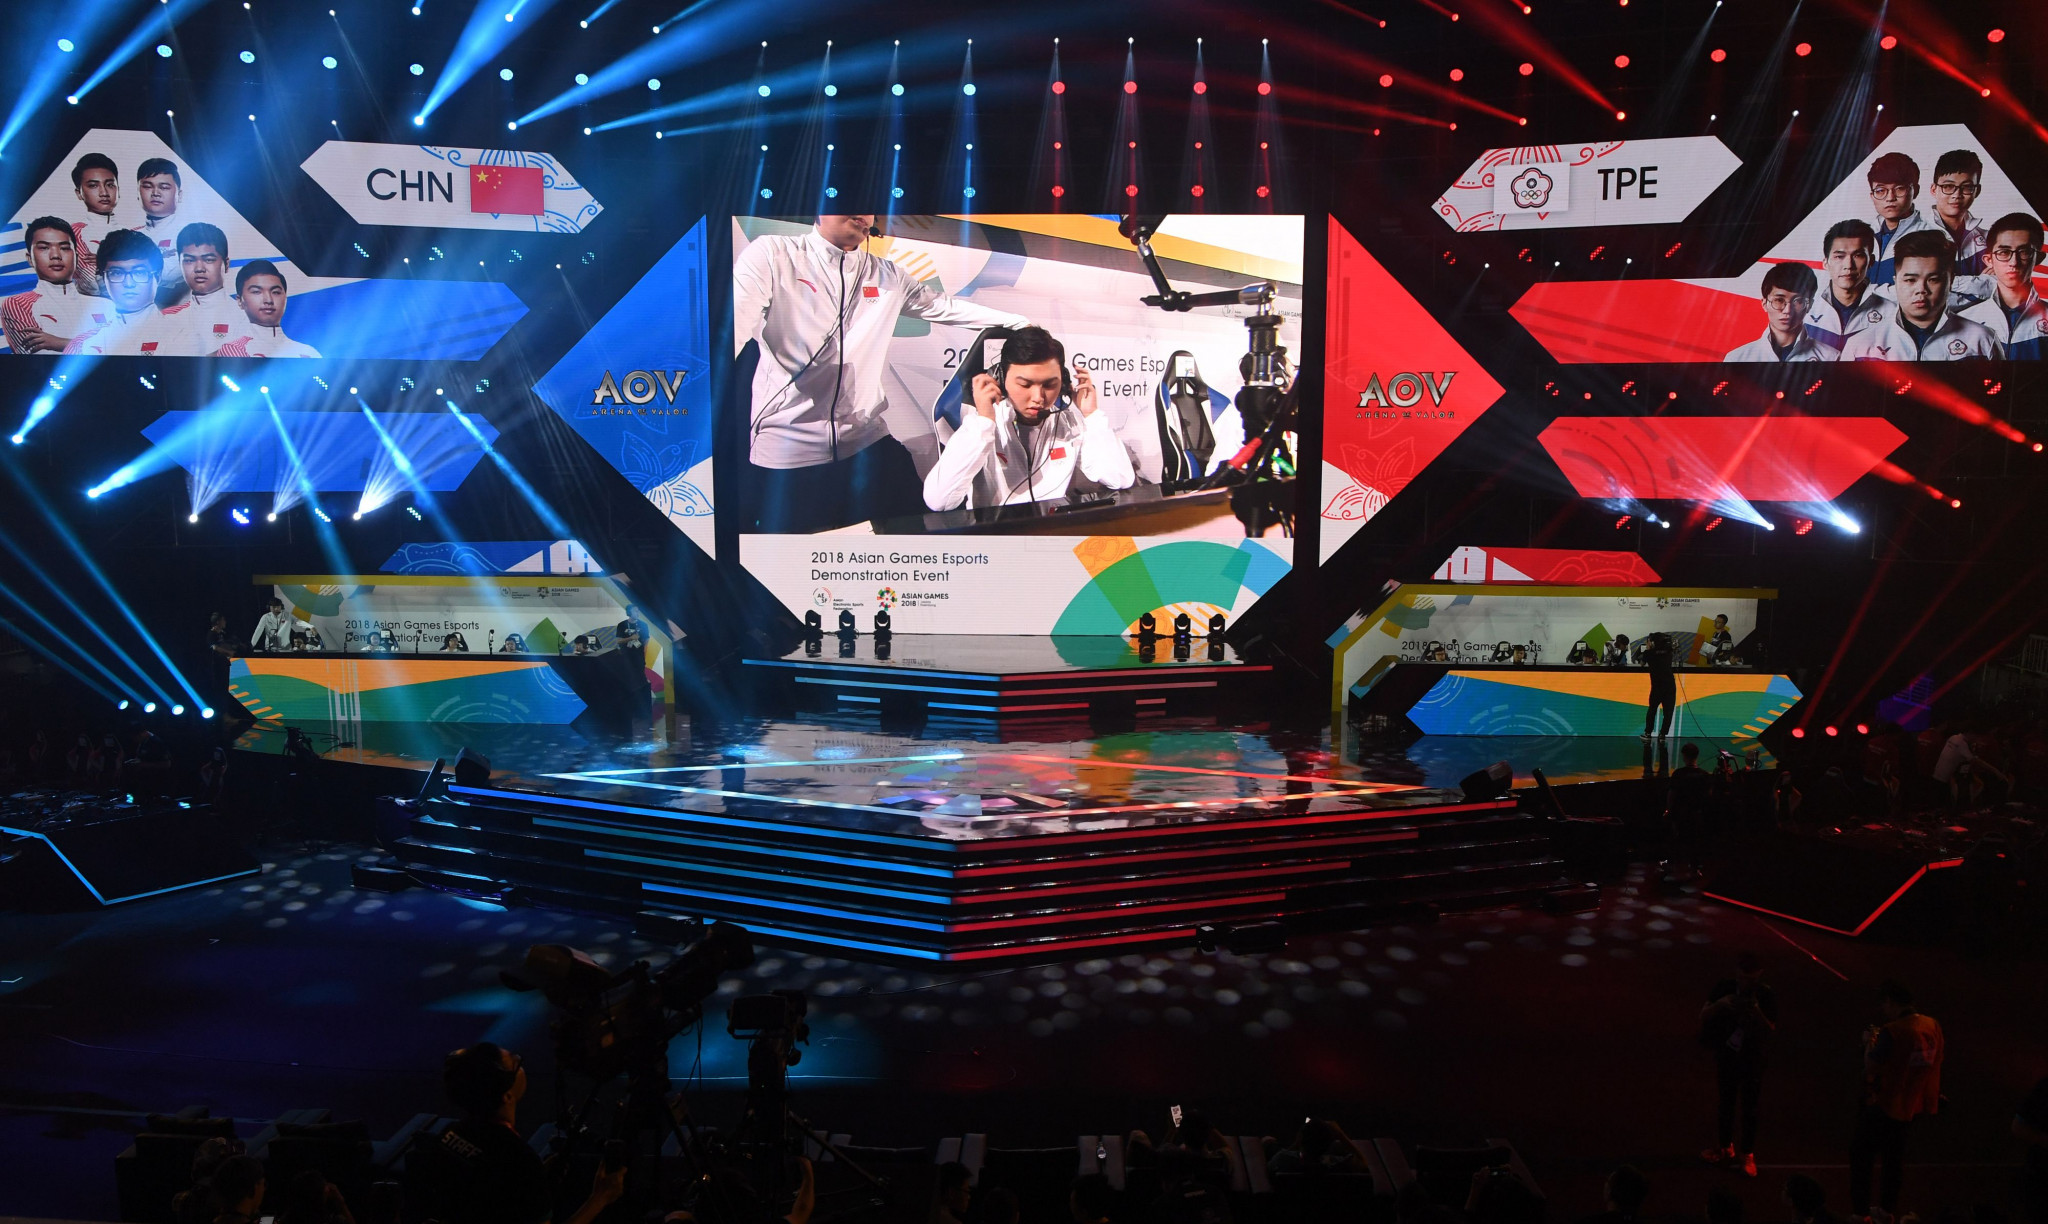 Esports took place as a demonstration sport at the 2018 Asian Games in Jakarta ©Getty Images